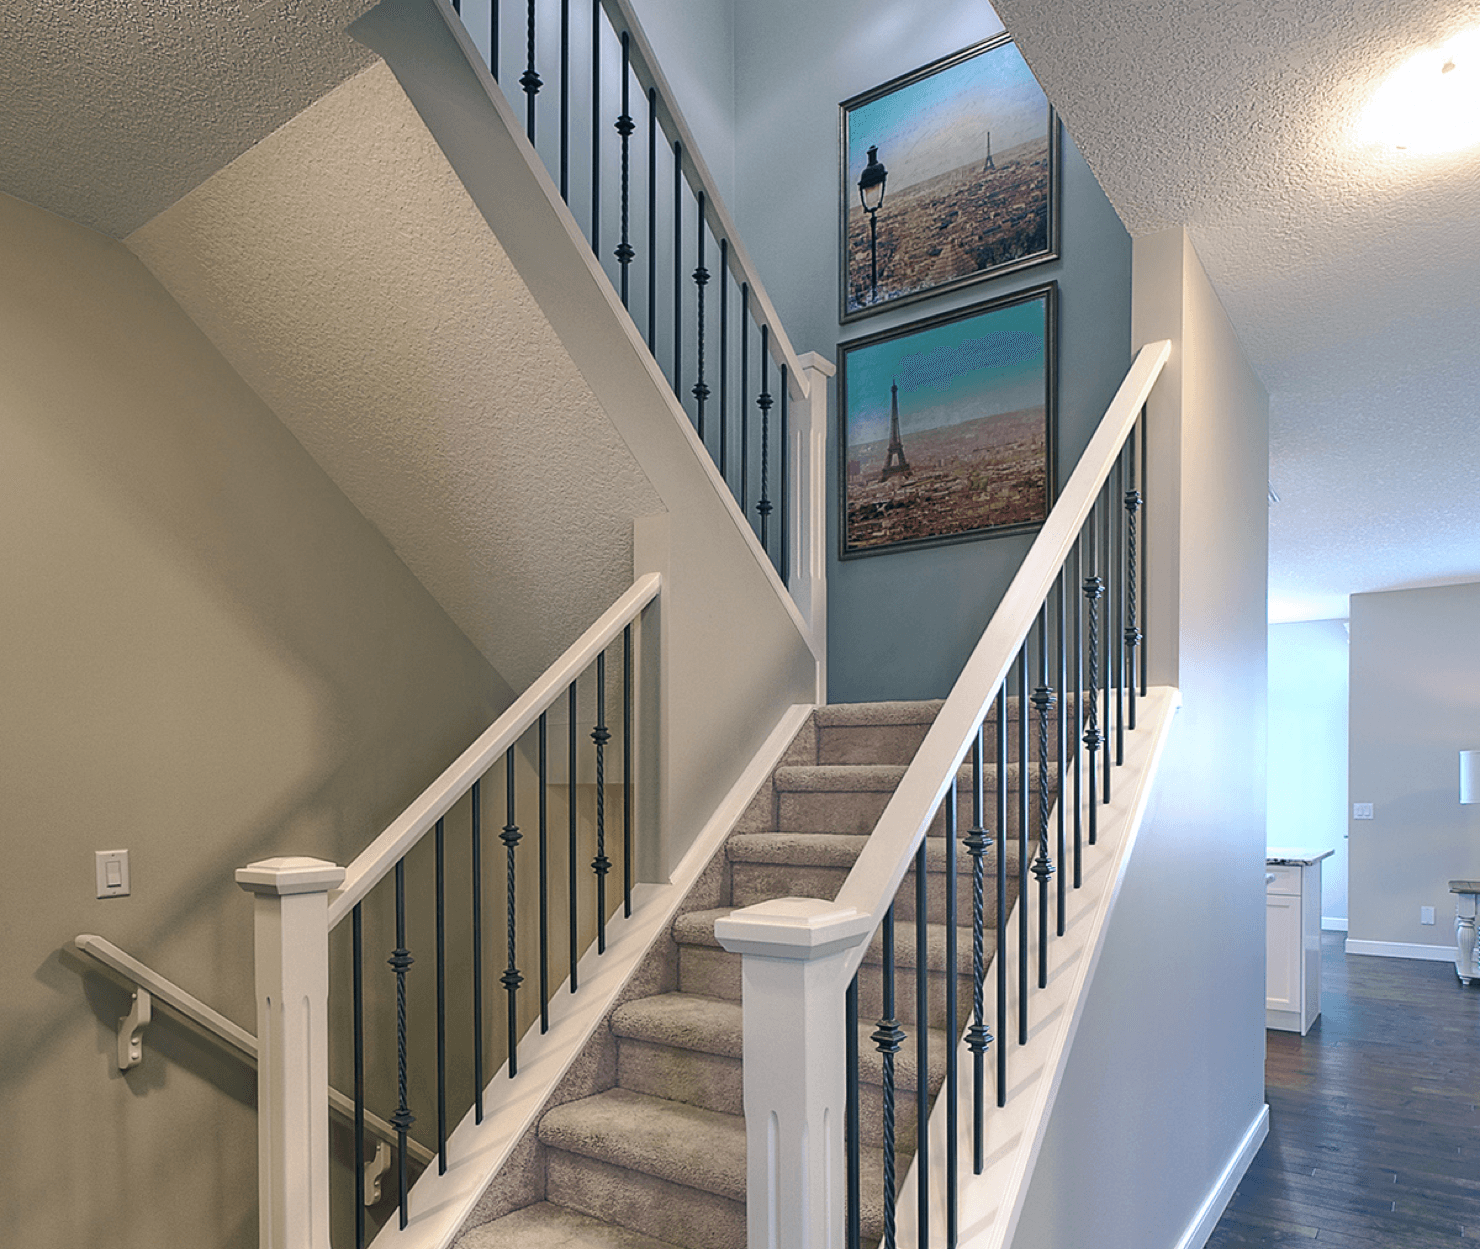 8 Stunning Stairwell Design Ideas Blue Image